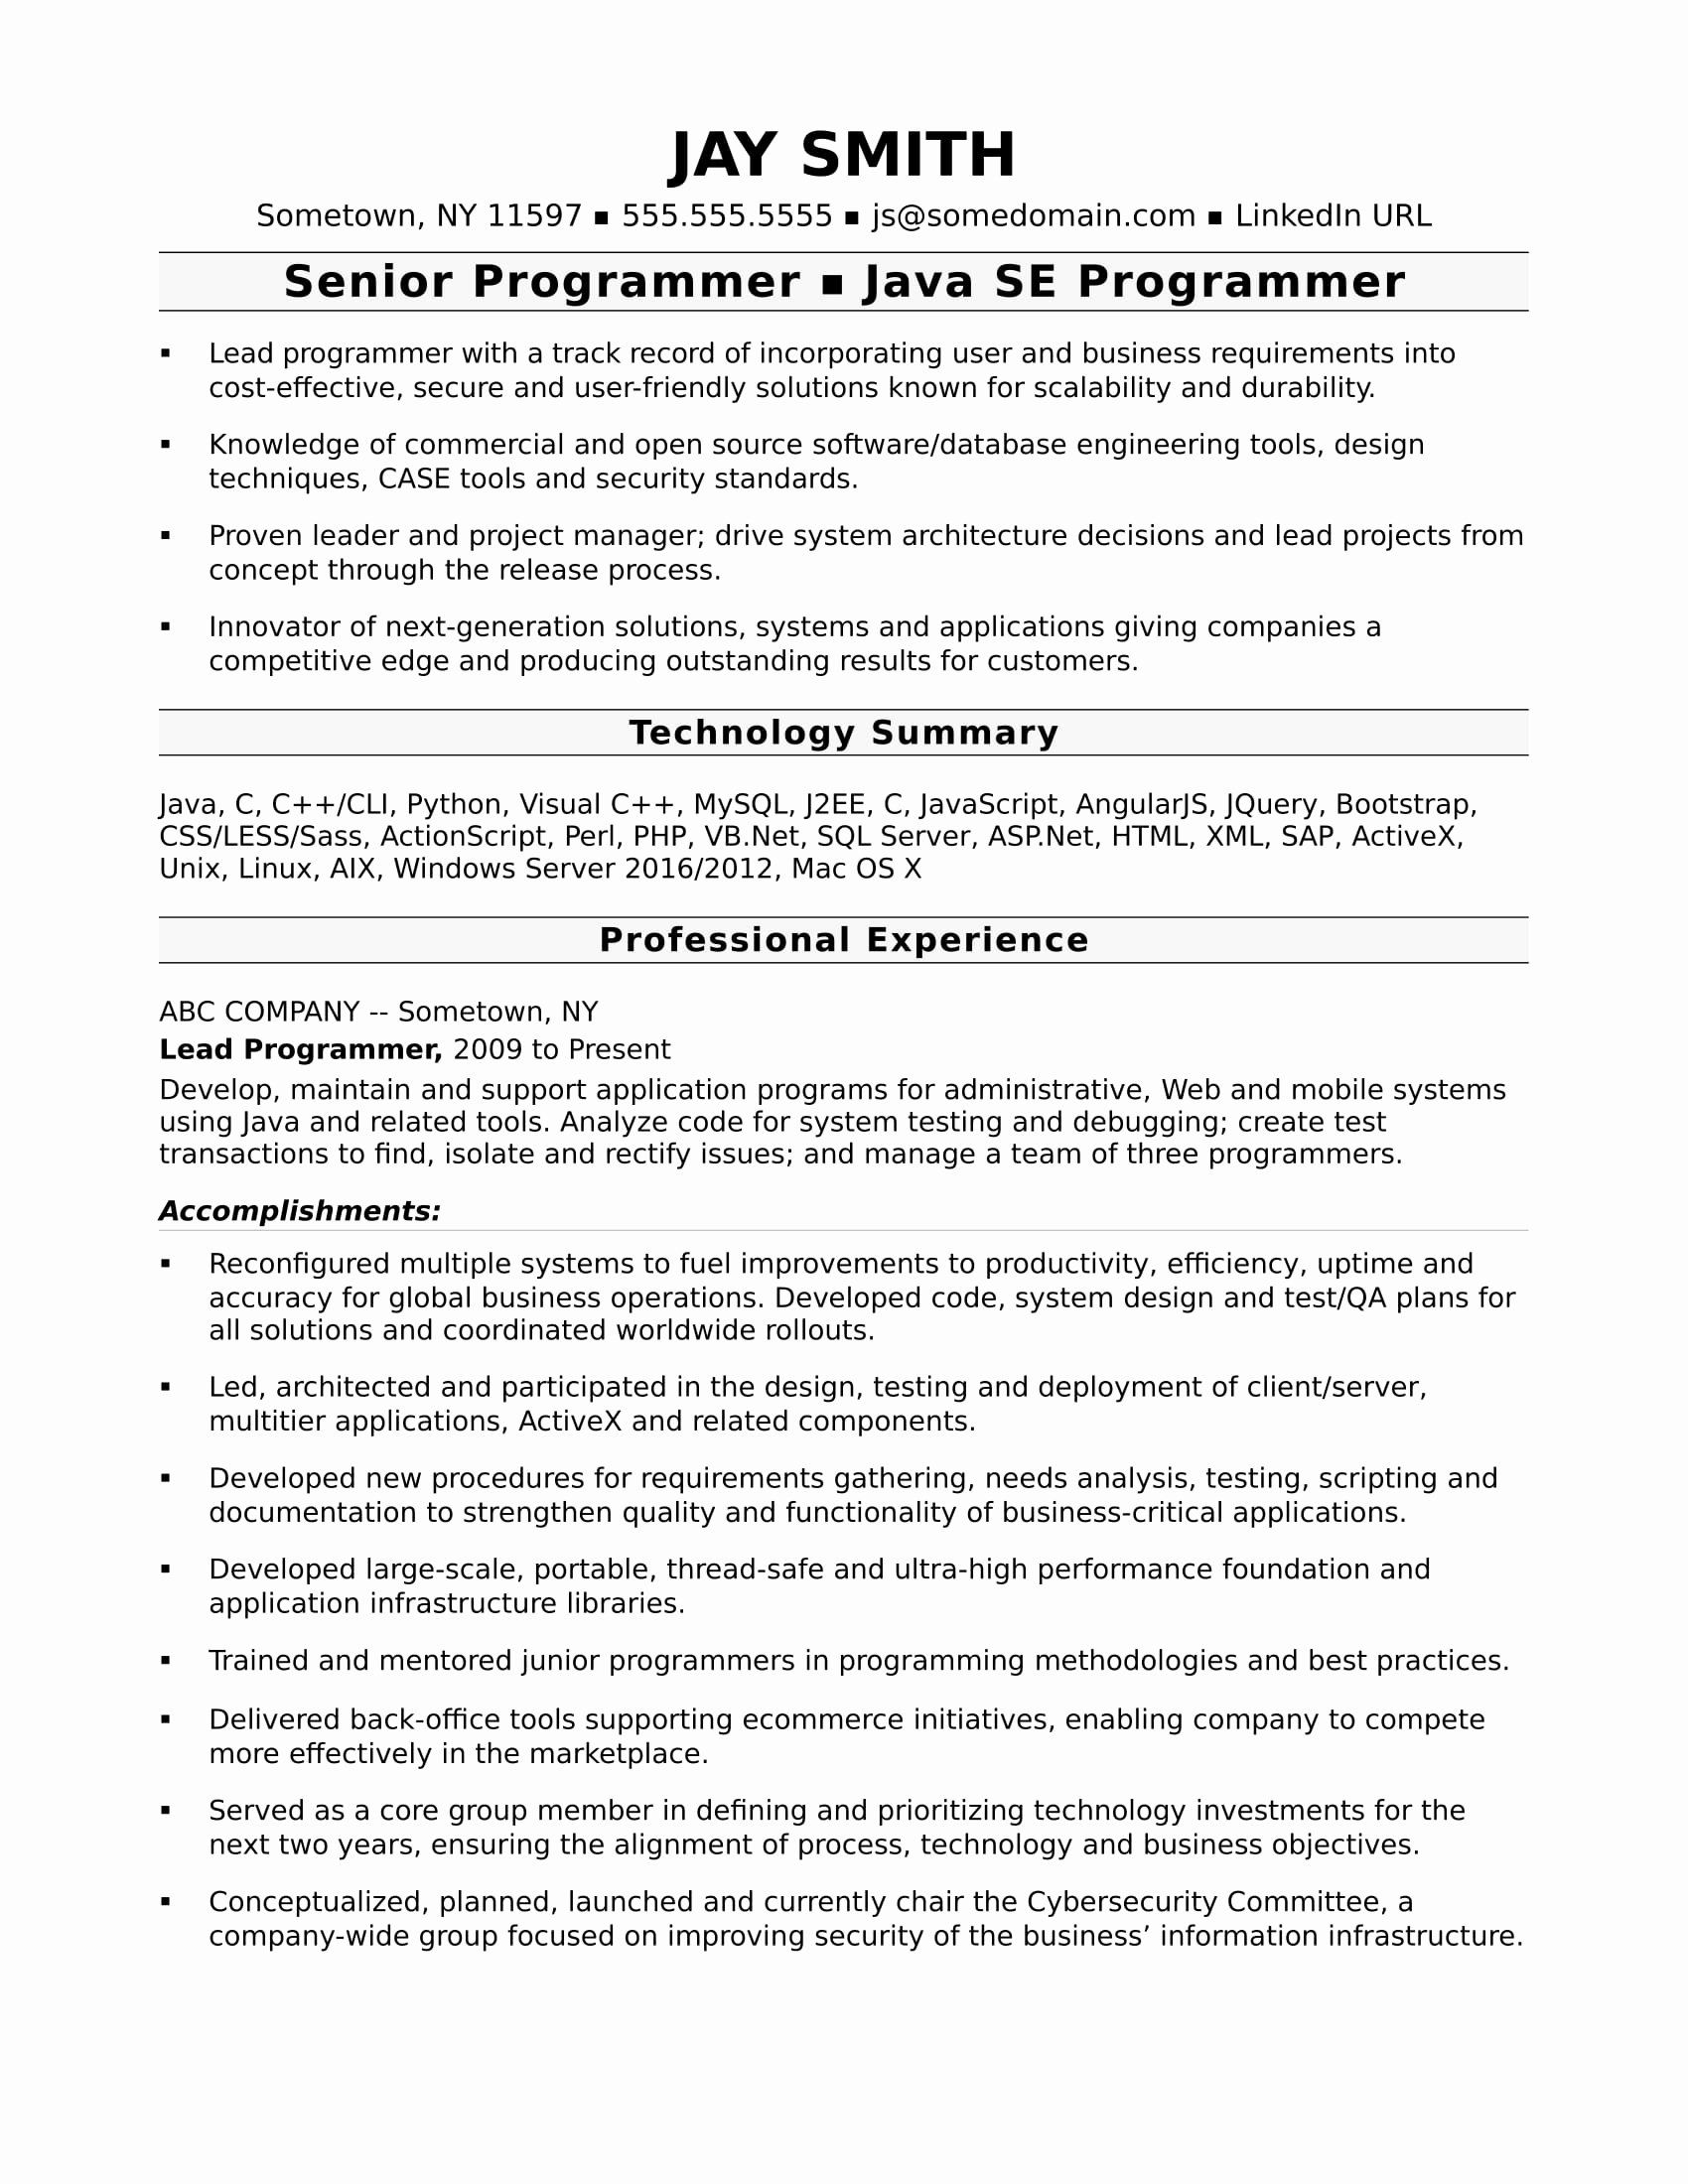 e534a1a2b741881464e4f789aba28354 One Year Experience Resume Format For Android Developer on